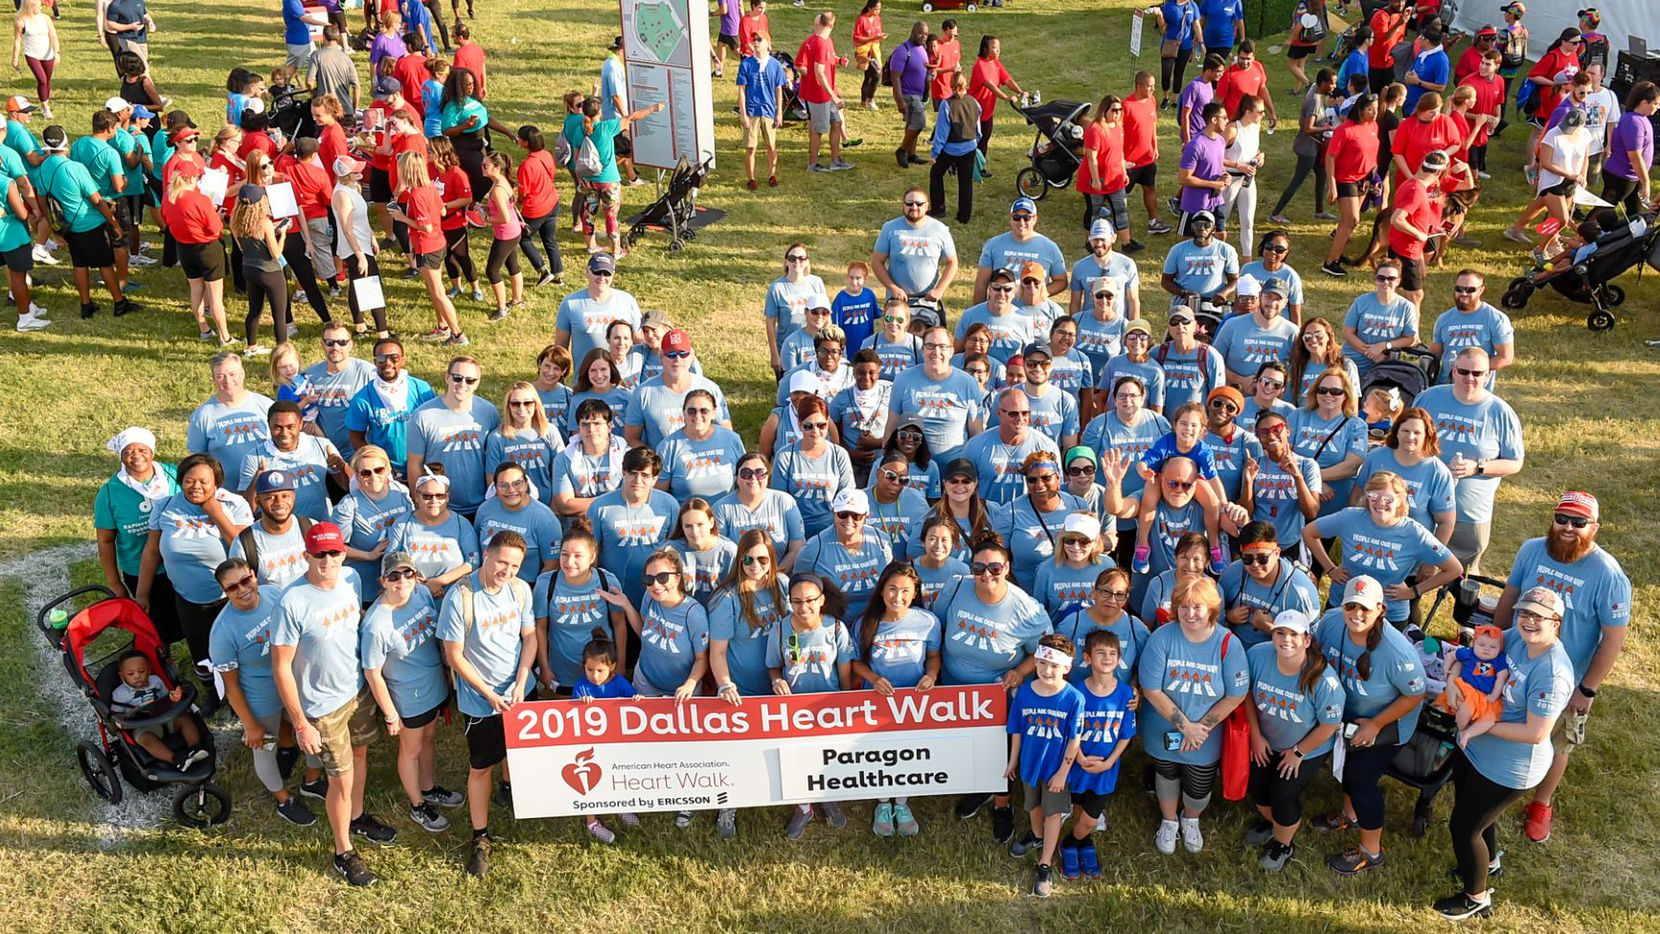 Paragon Healthcare workers posed for a group shot at the 2019 Heart Walk.